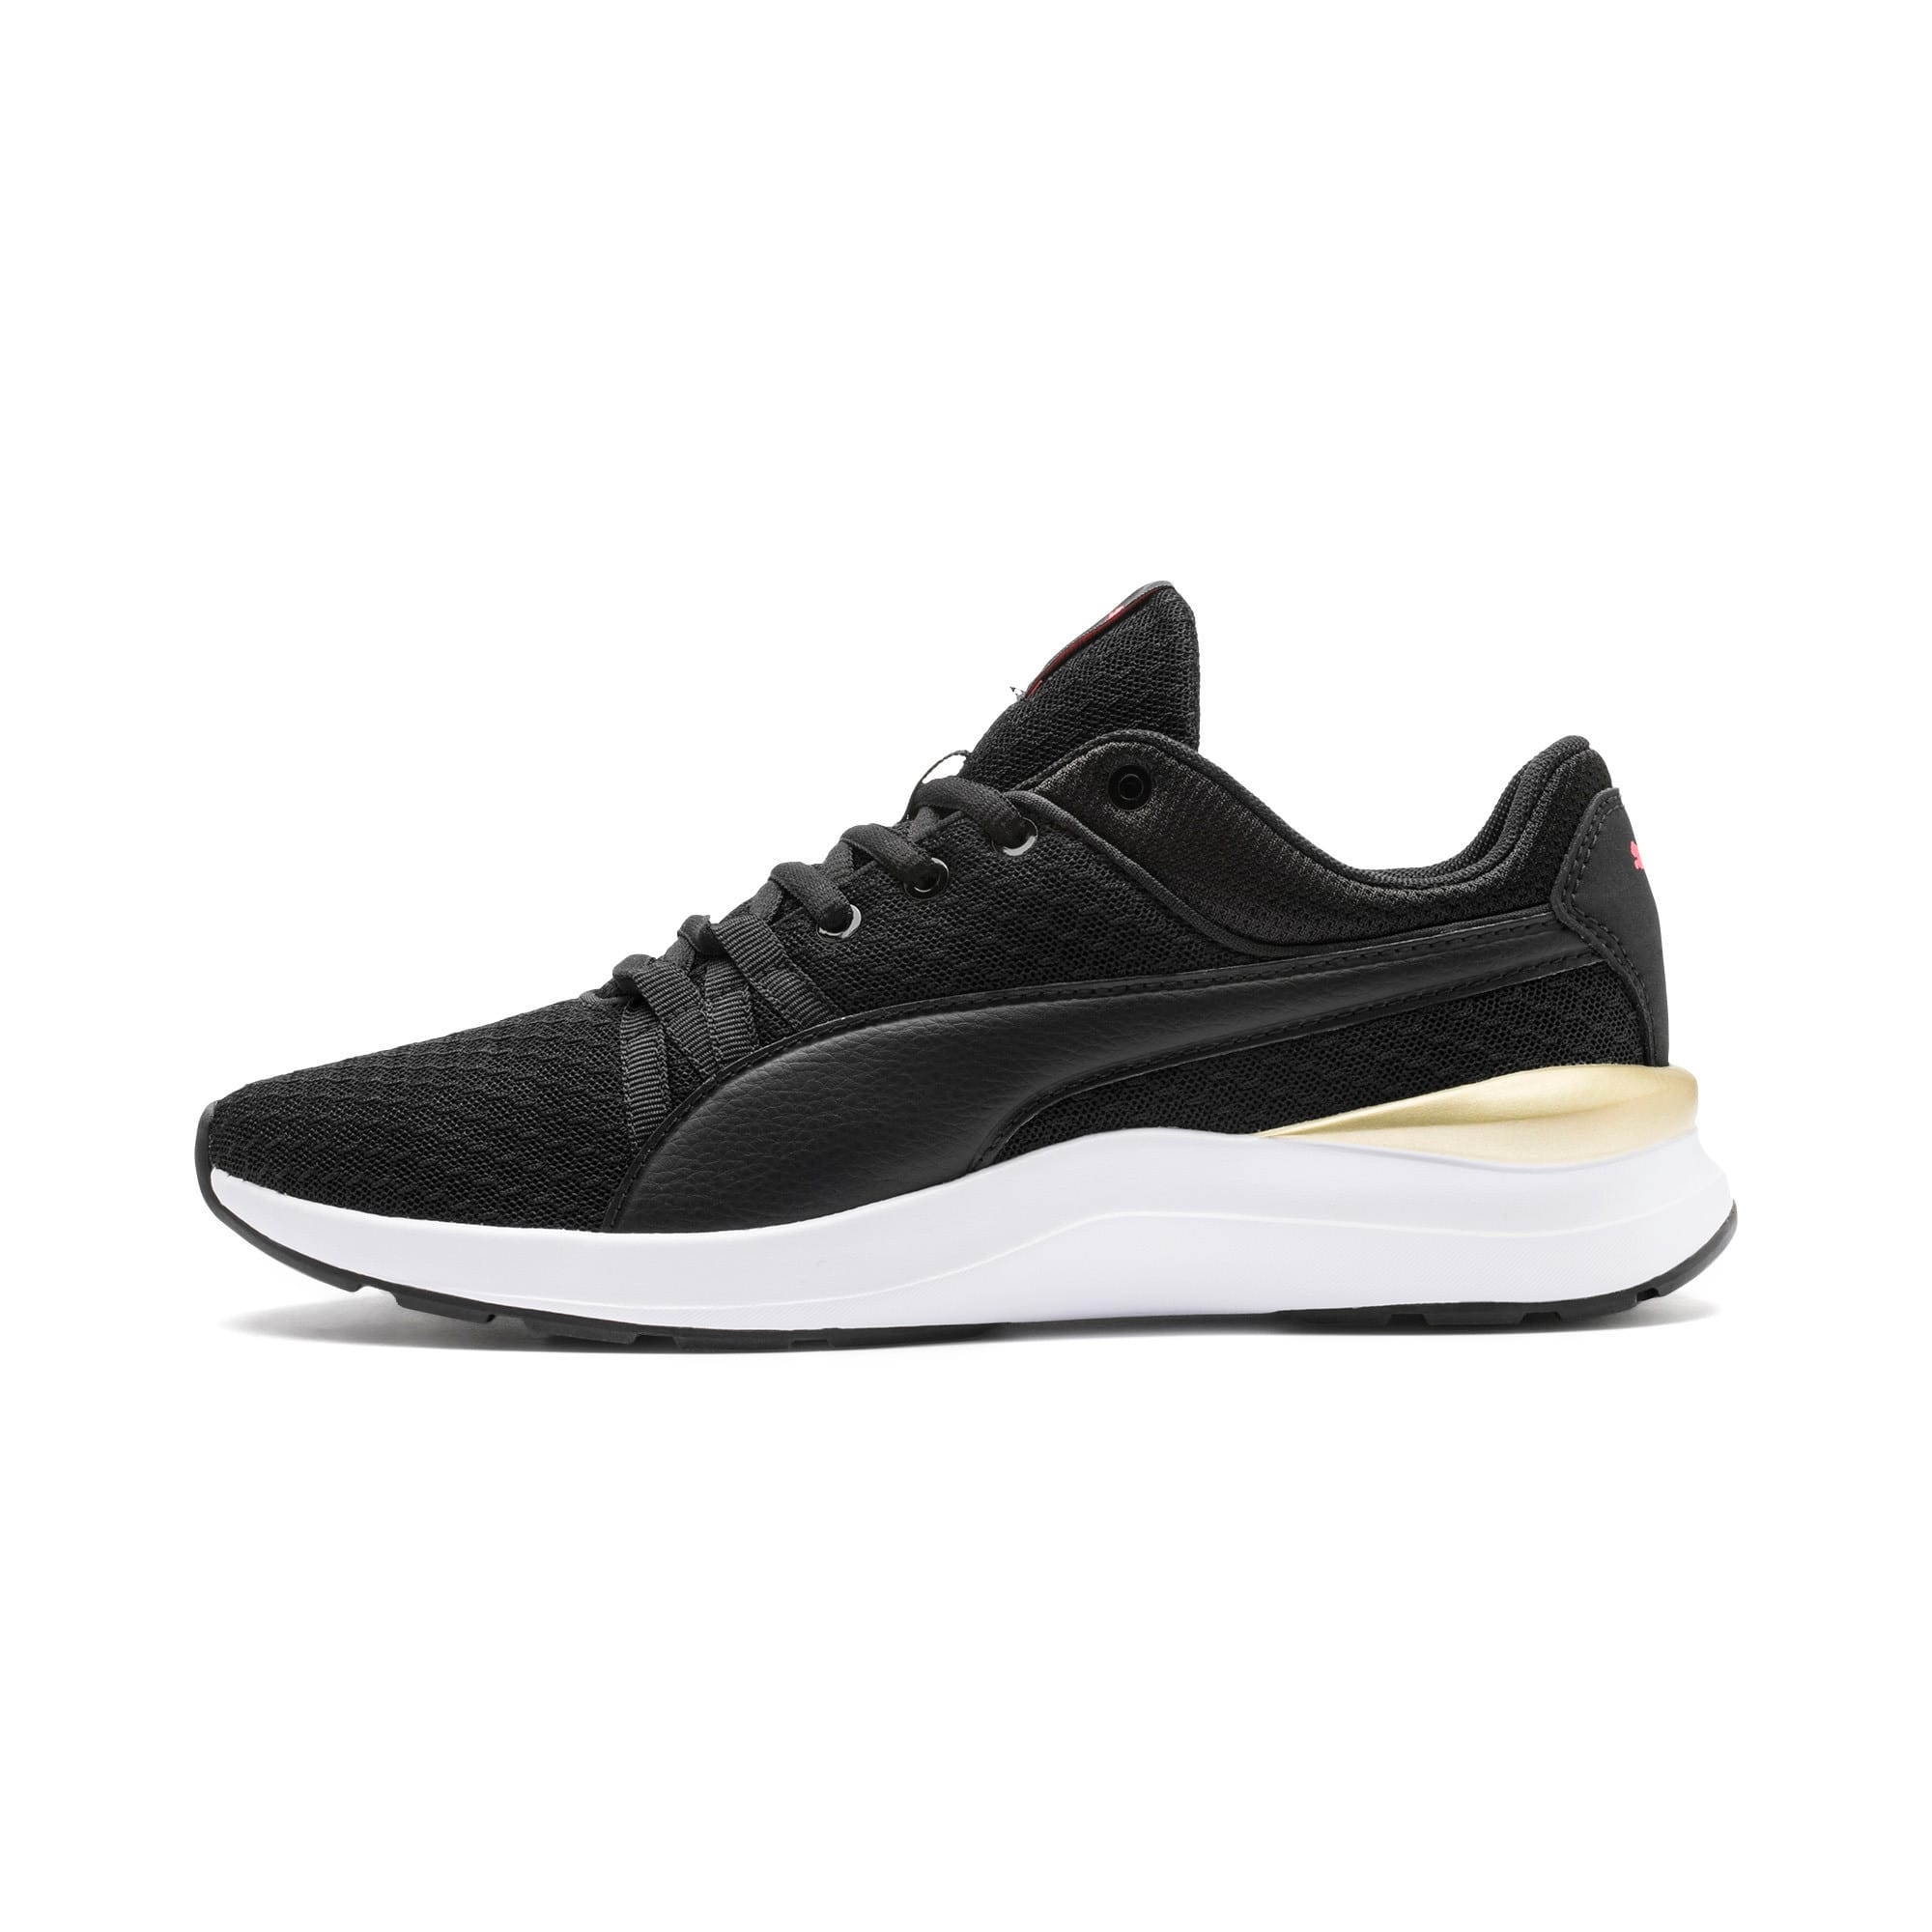 Thumbnail 1 of Adela Trainers, Puma Black-Puma Team Gold, medium